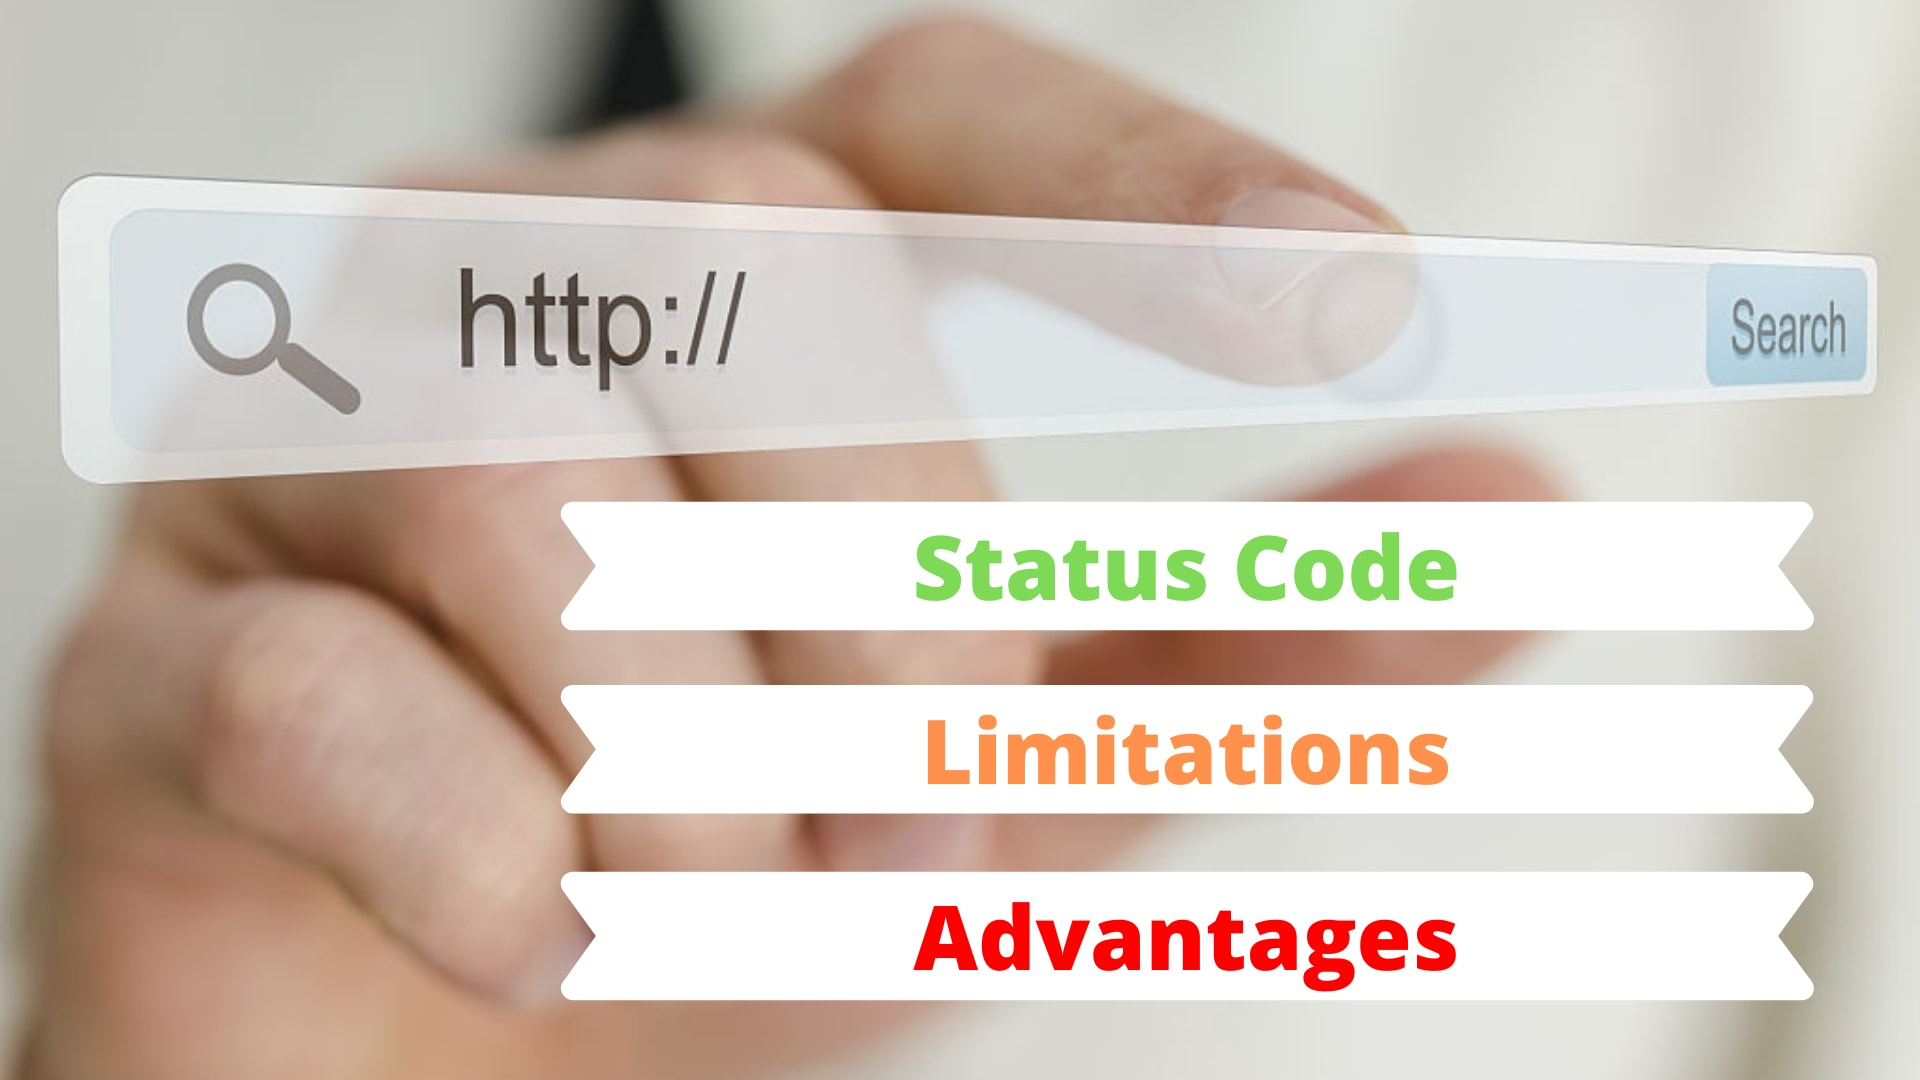 http full form - http full form and learn more about status code, Limitations